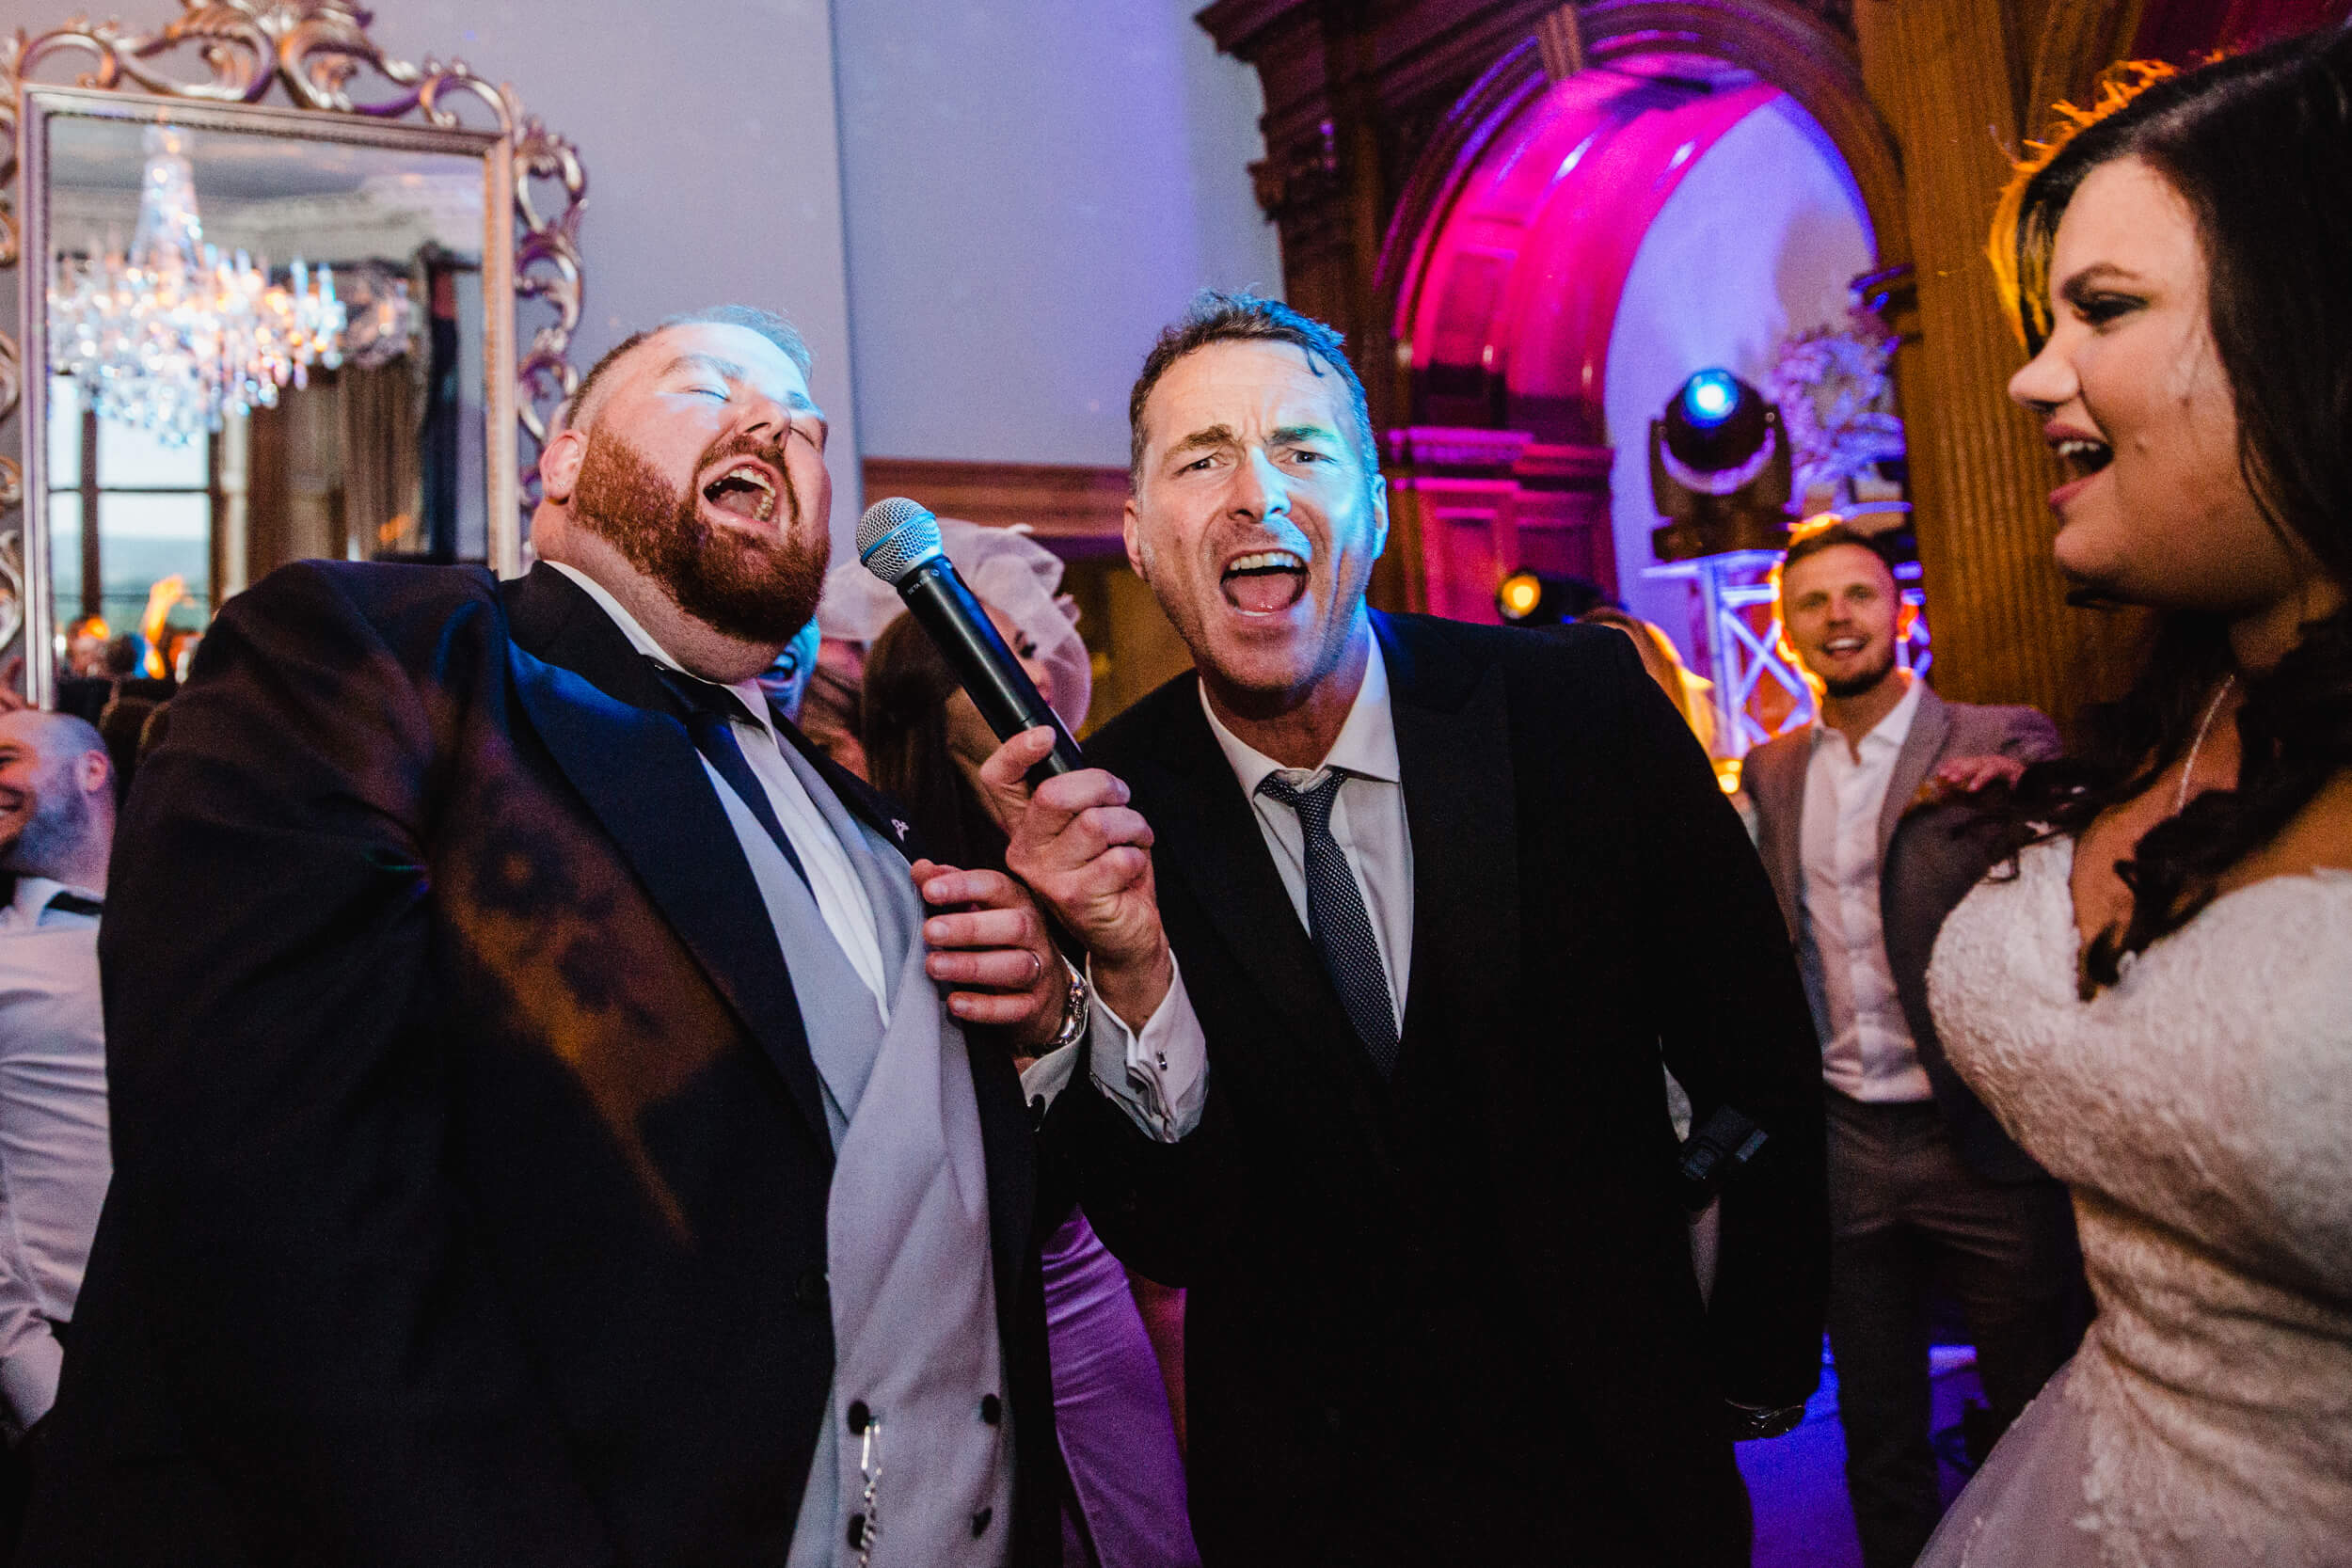 groom partying with bride at end of wedding